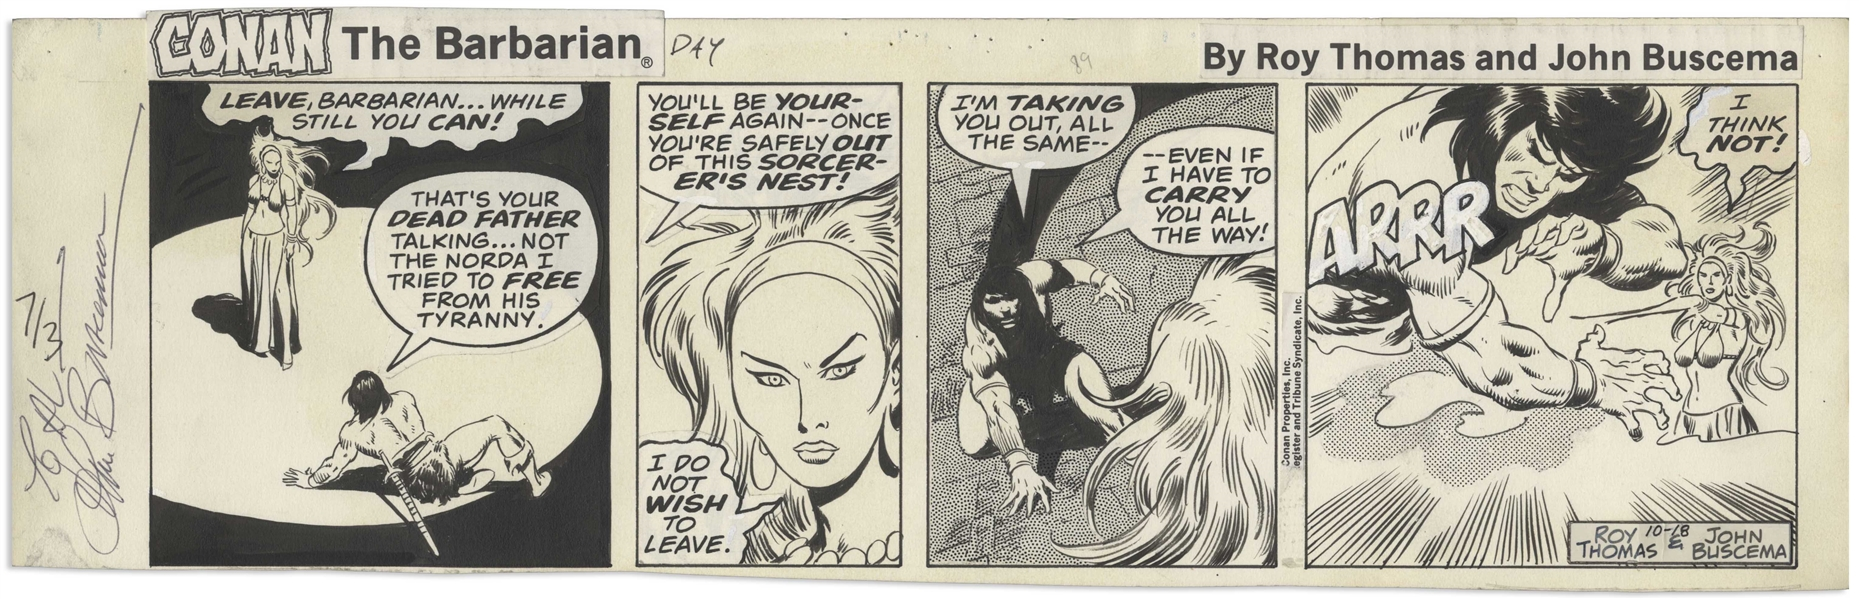 John Buscema Original ''Conan The Barbarian'' Strip From 1978